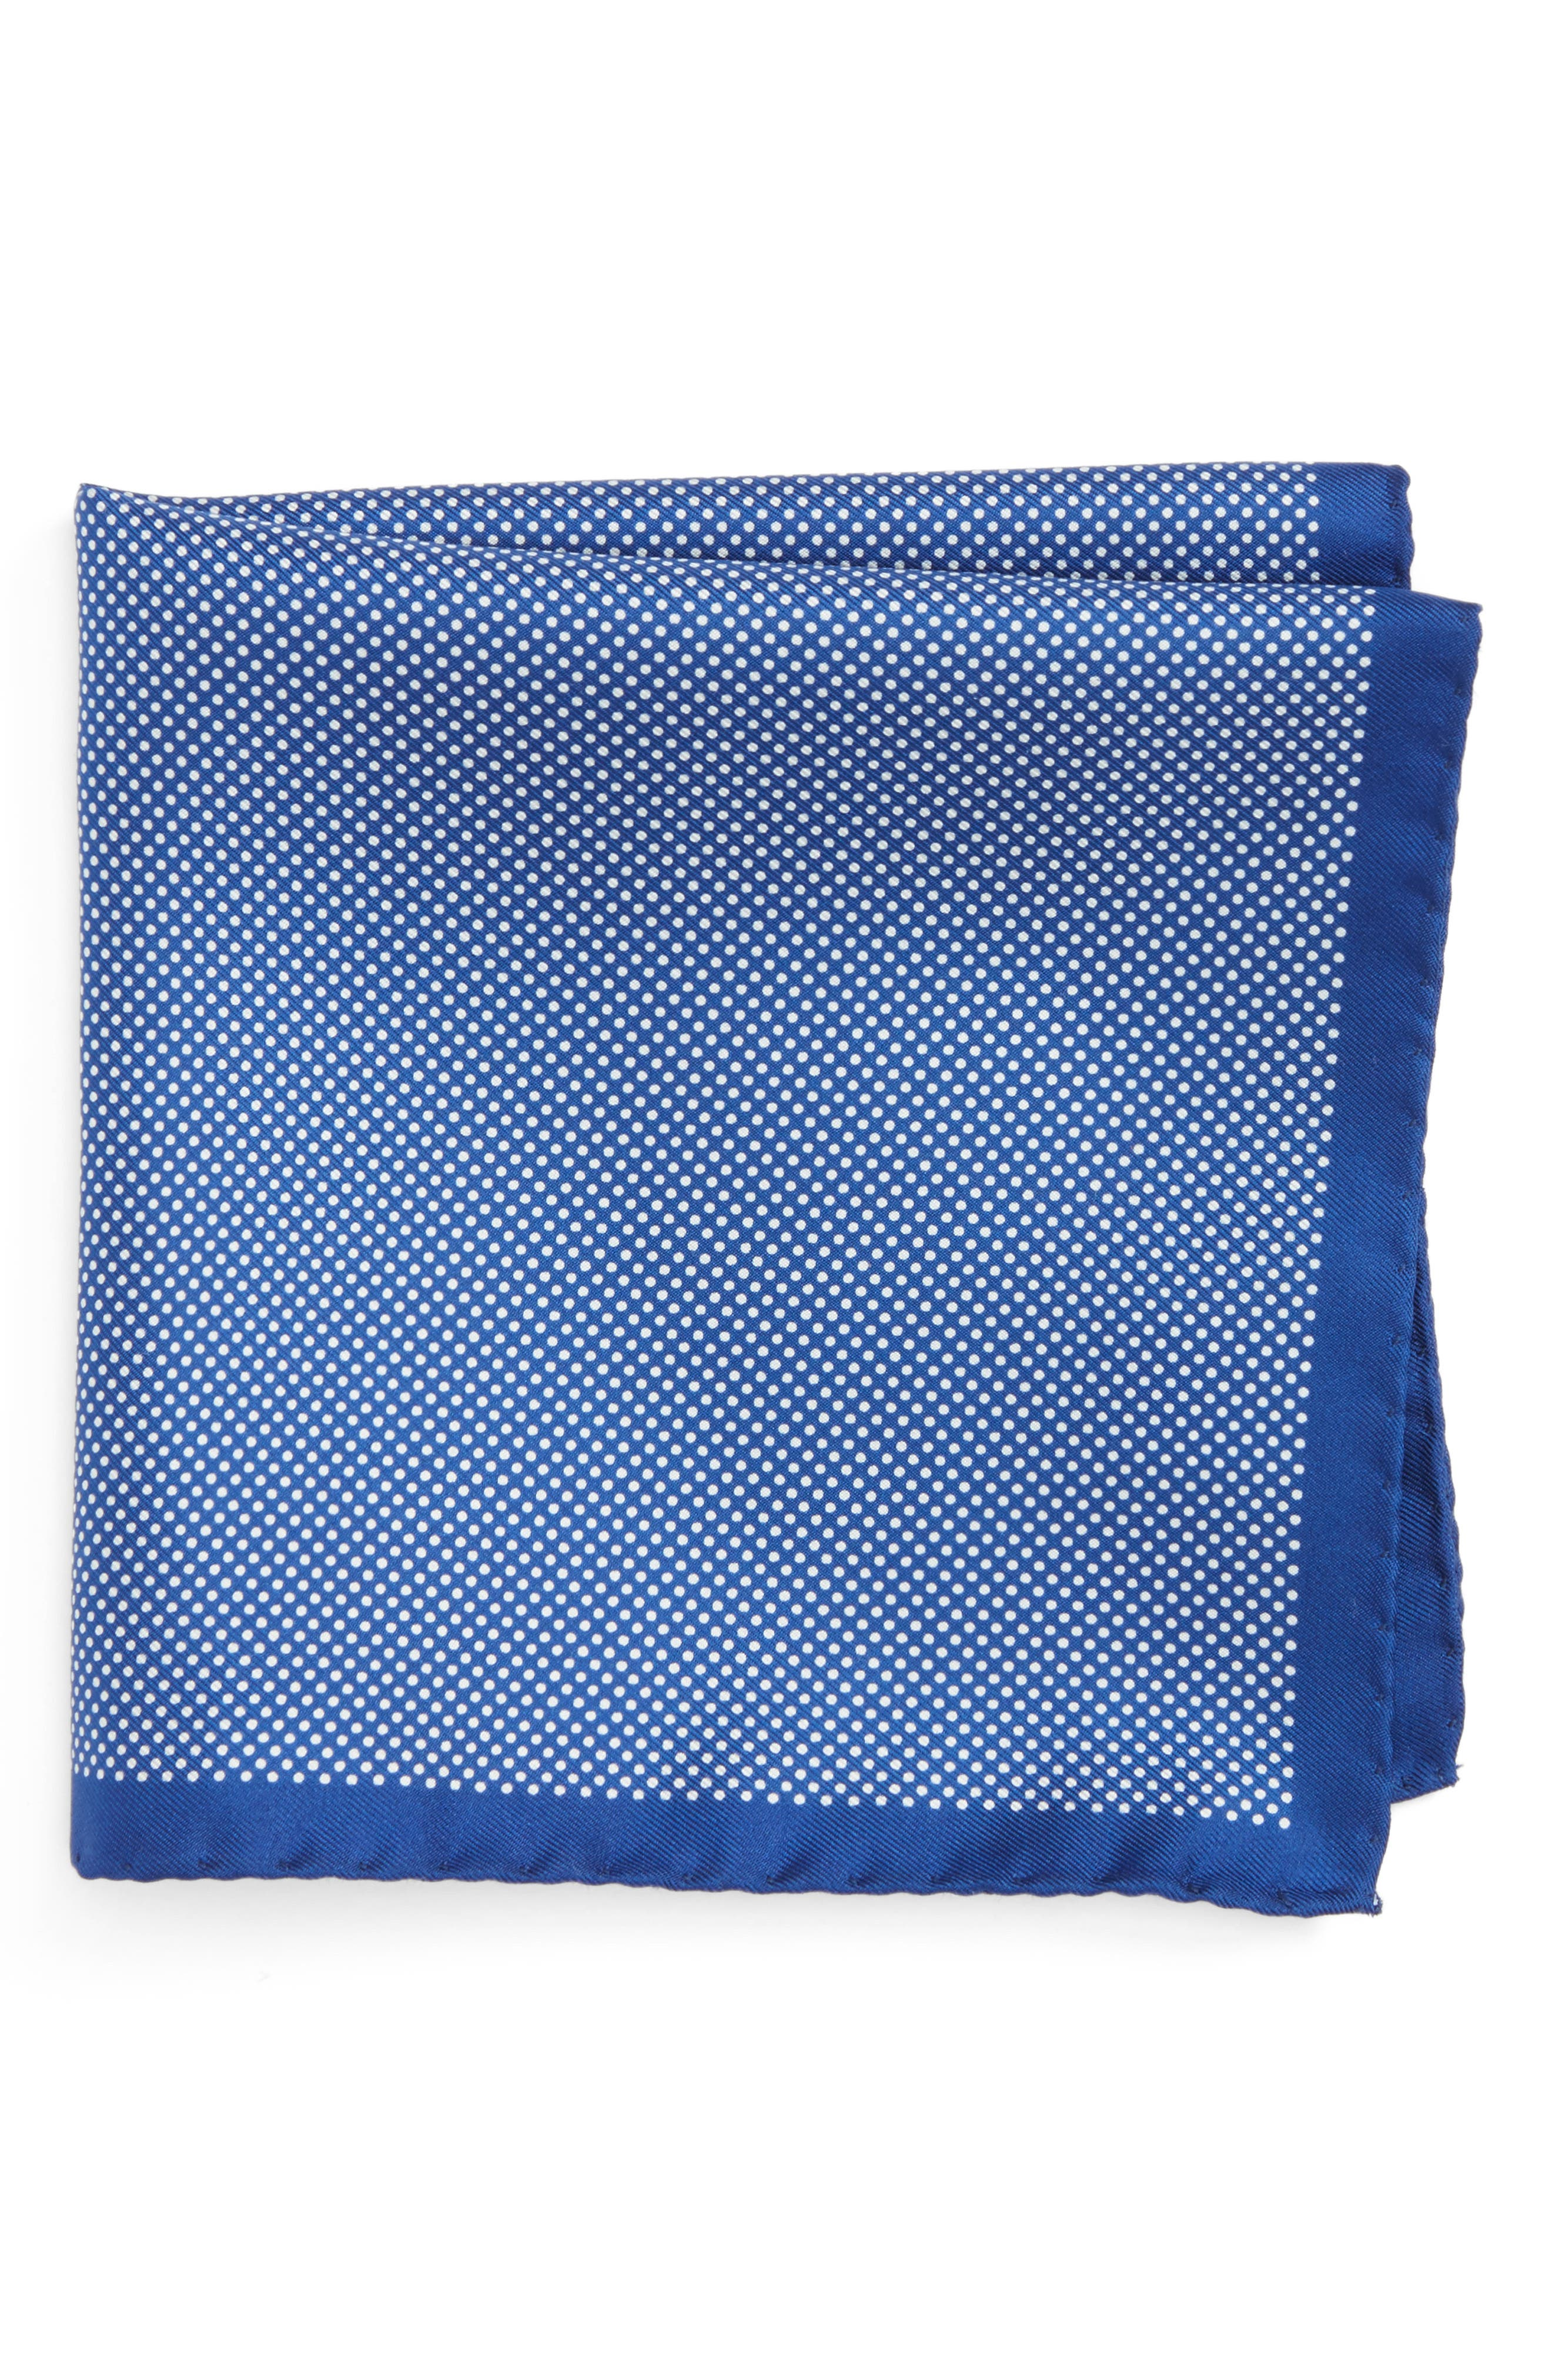 Dot Silk Pocket Square,                         Main,                         color, BLUE